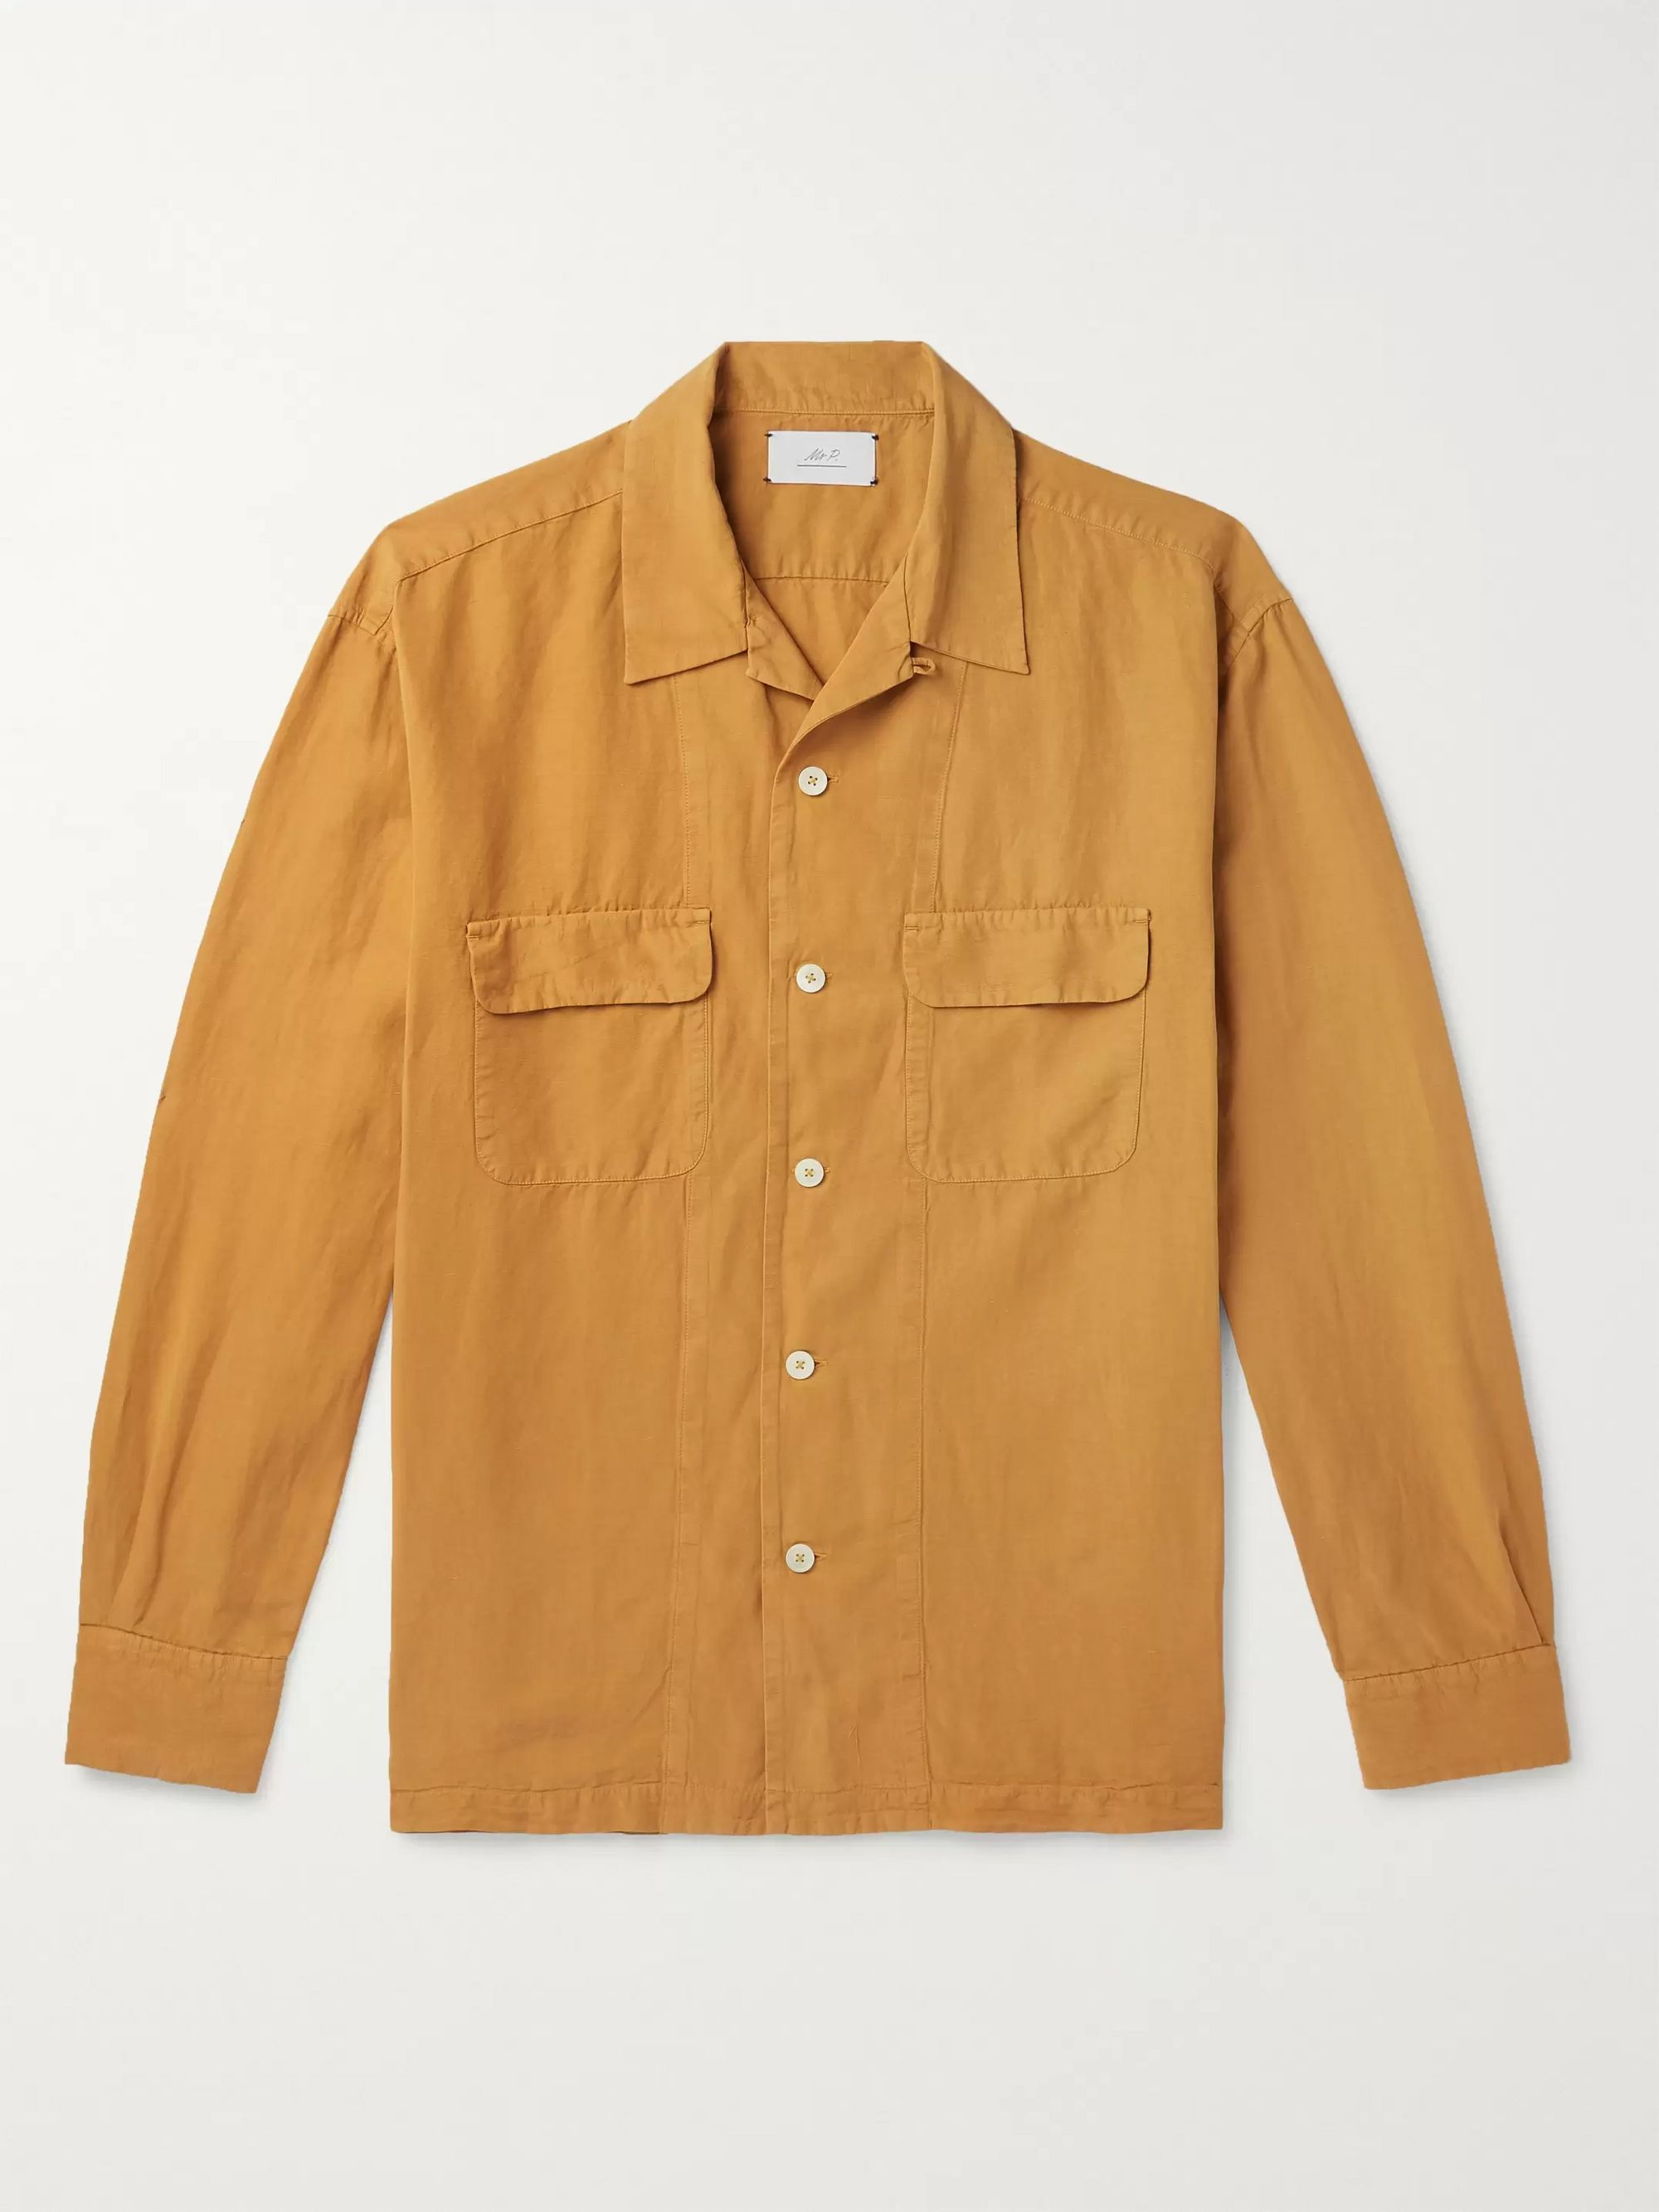 Mr P. Convertible-Collar Garment-Dyed Lyocell, Linen and Cotton-Blend Shirt